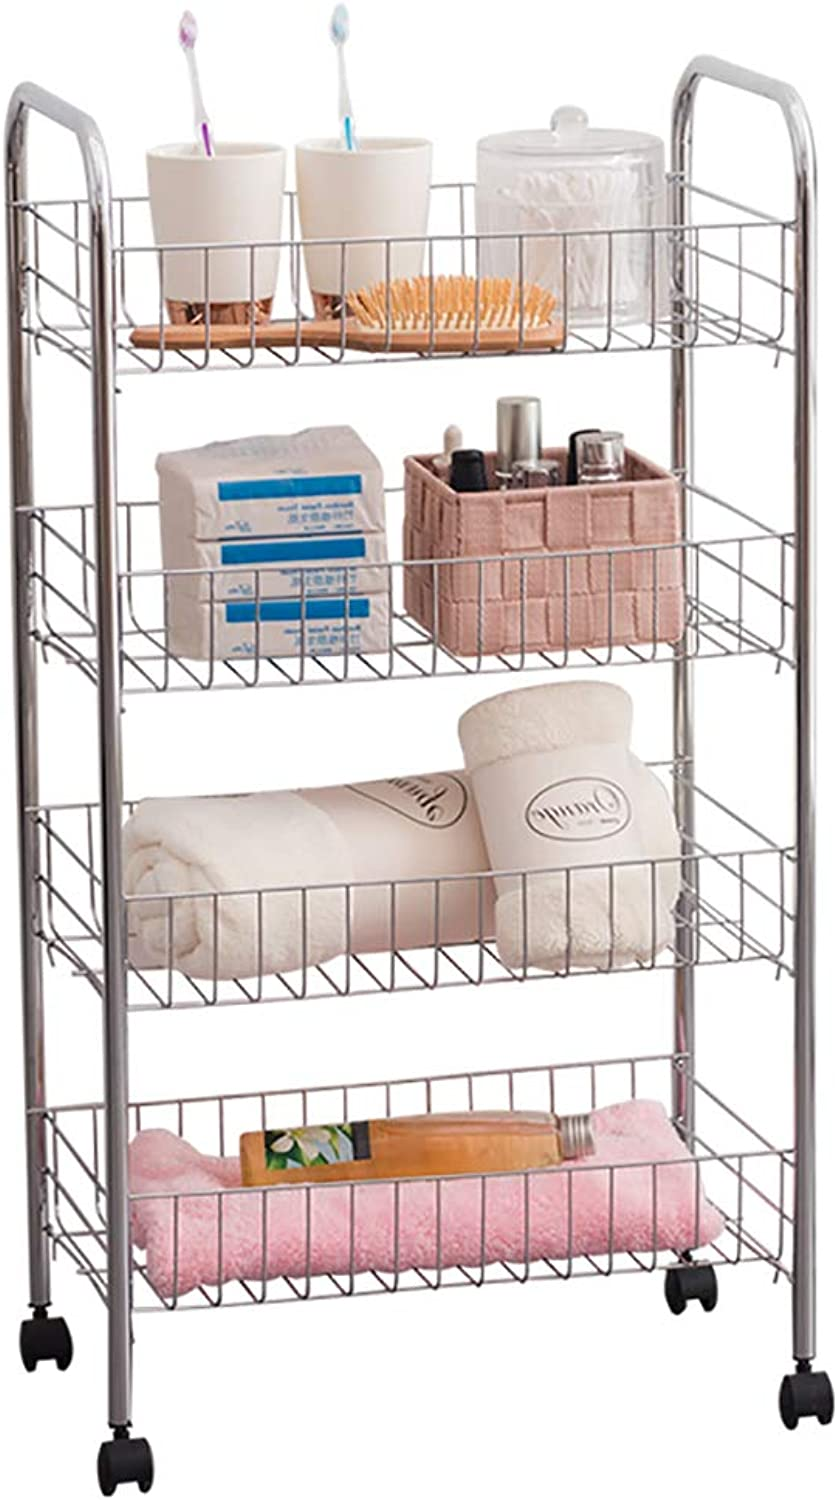 4-Tier Electroplated Dense Wire Movable Shelf Bedroom Wheeled Storage Shelf Kitchen Dining Car Vegetable and Fruit Storage Rack L16.06W10.11H29.92 Inches